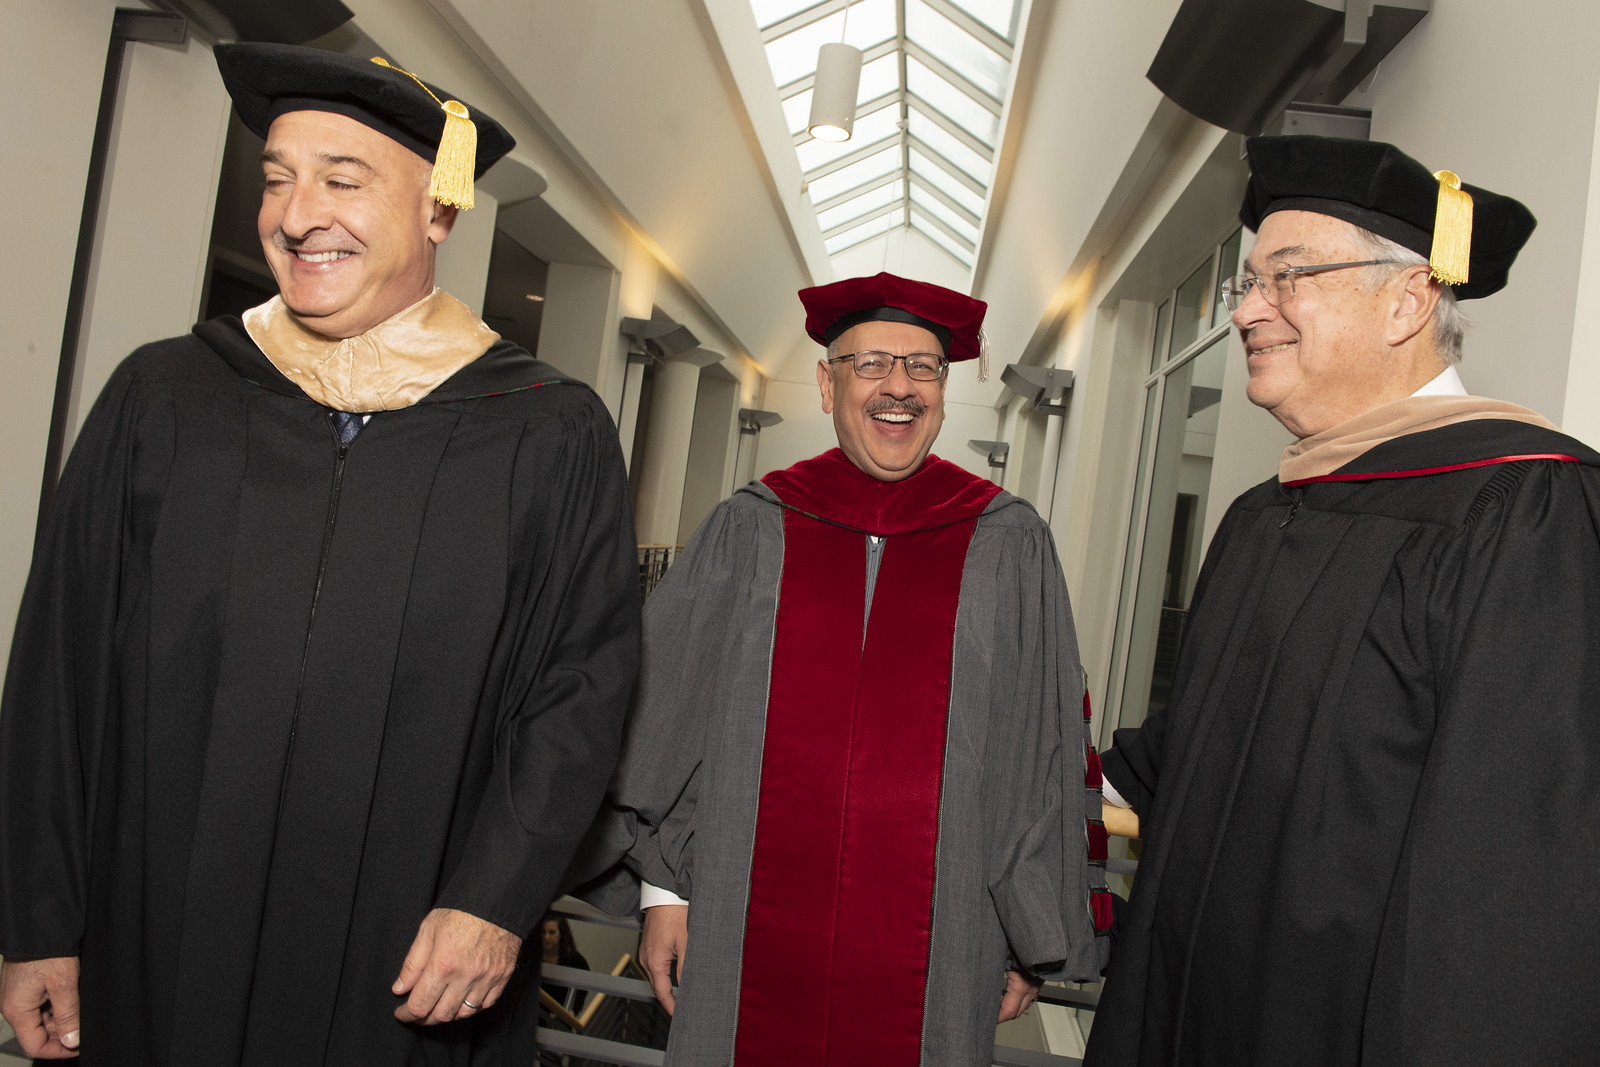 The Inauguration of Farnam Jahanian: Investiture Ceremony